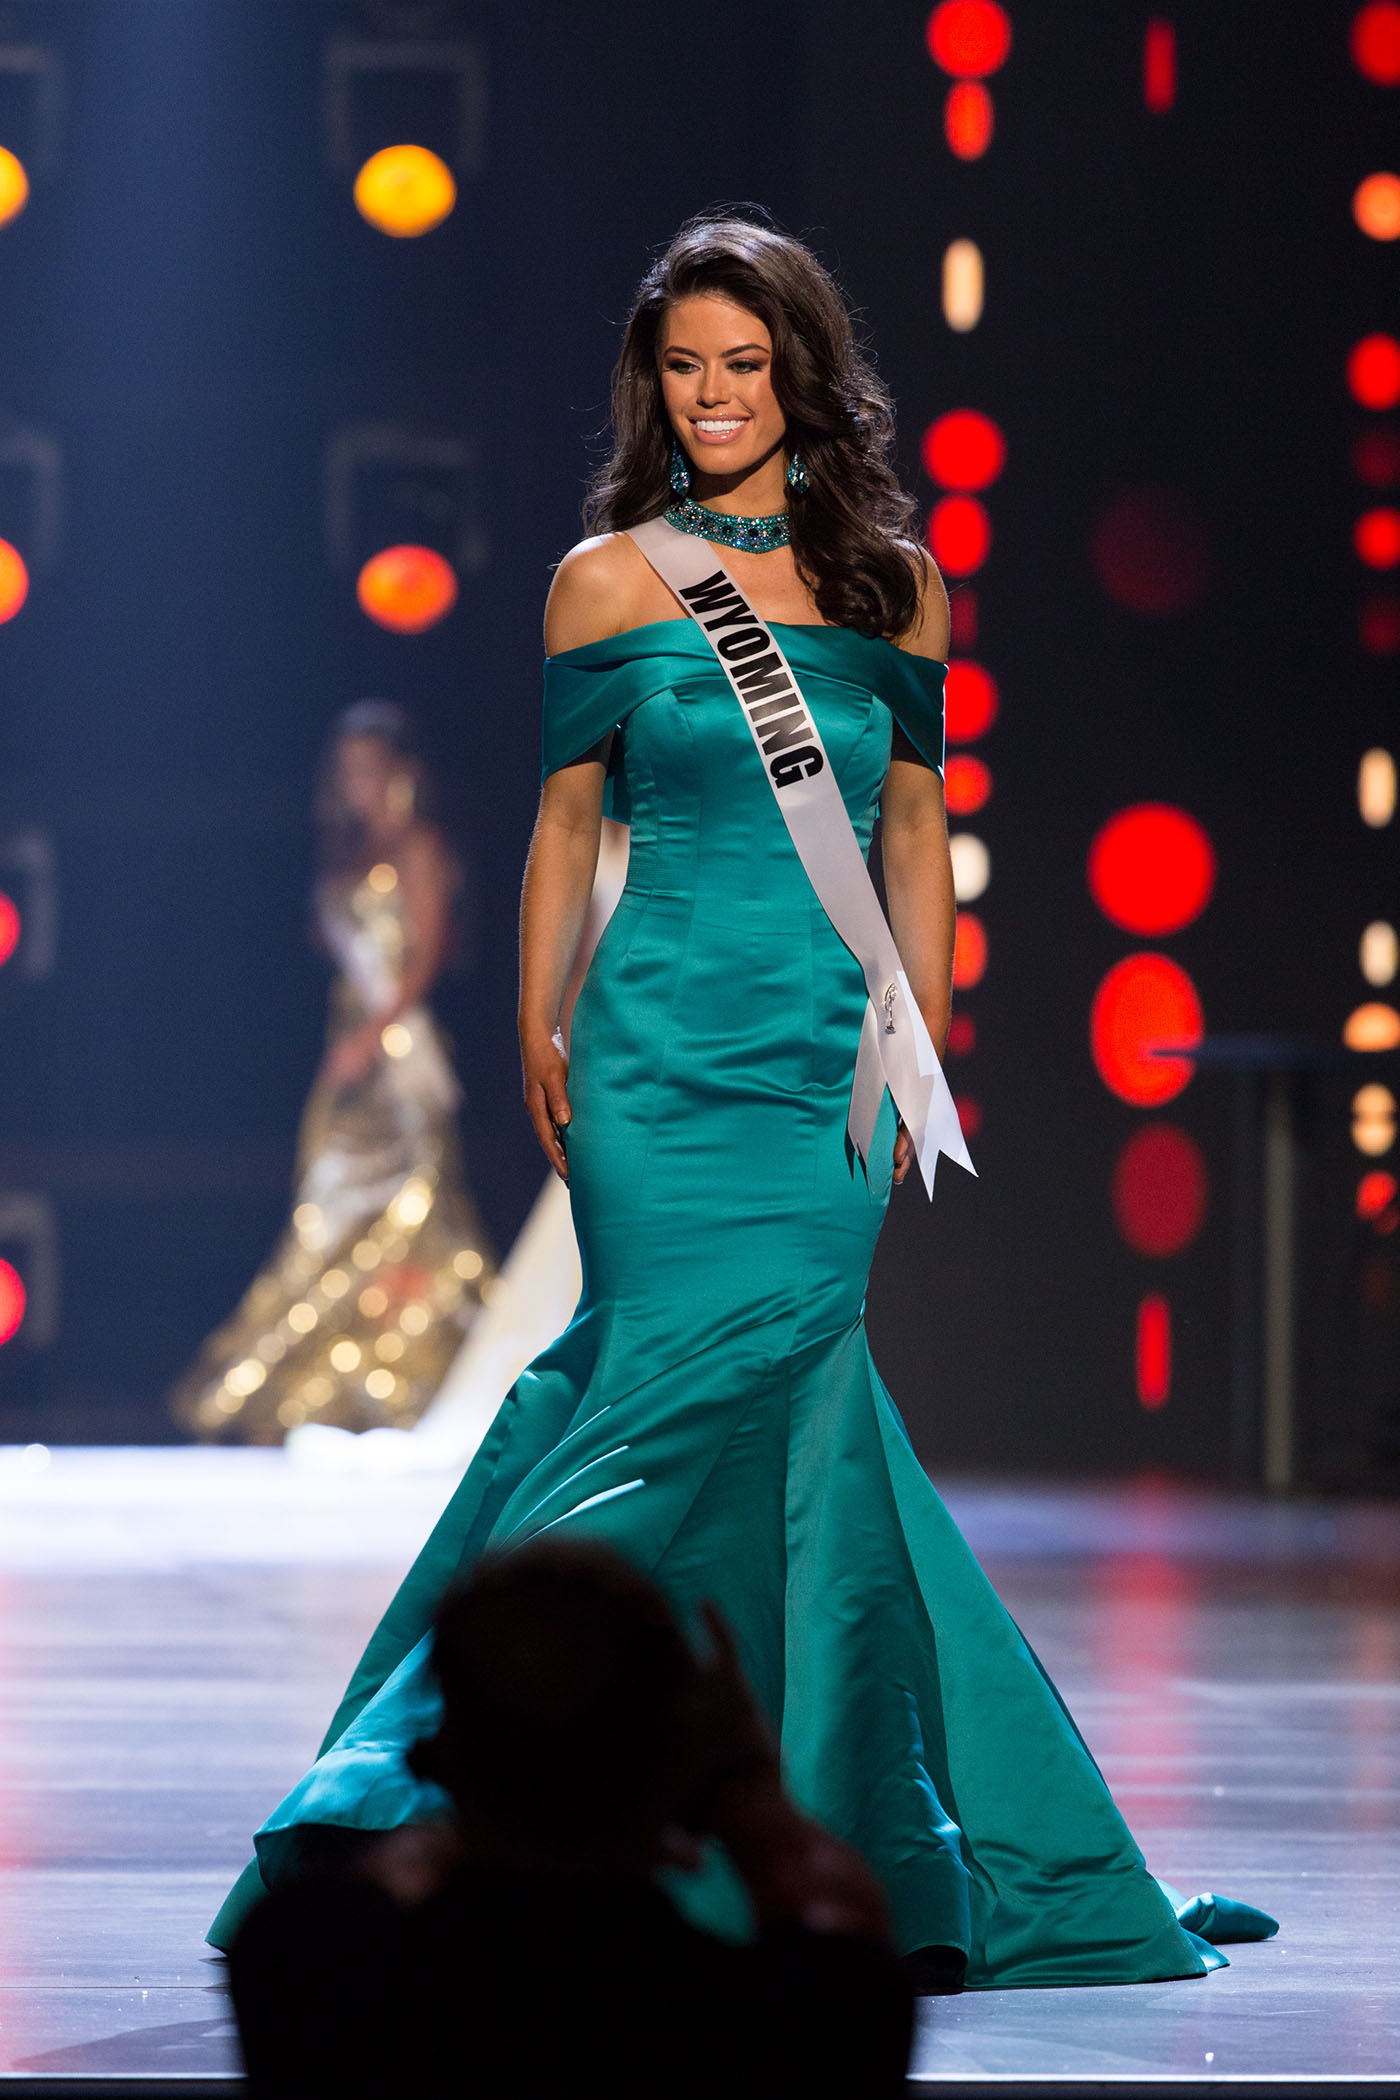 Miss Wyoming USA 2018